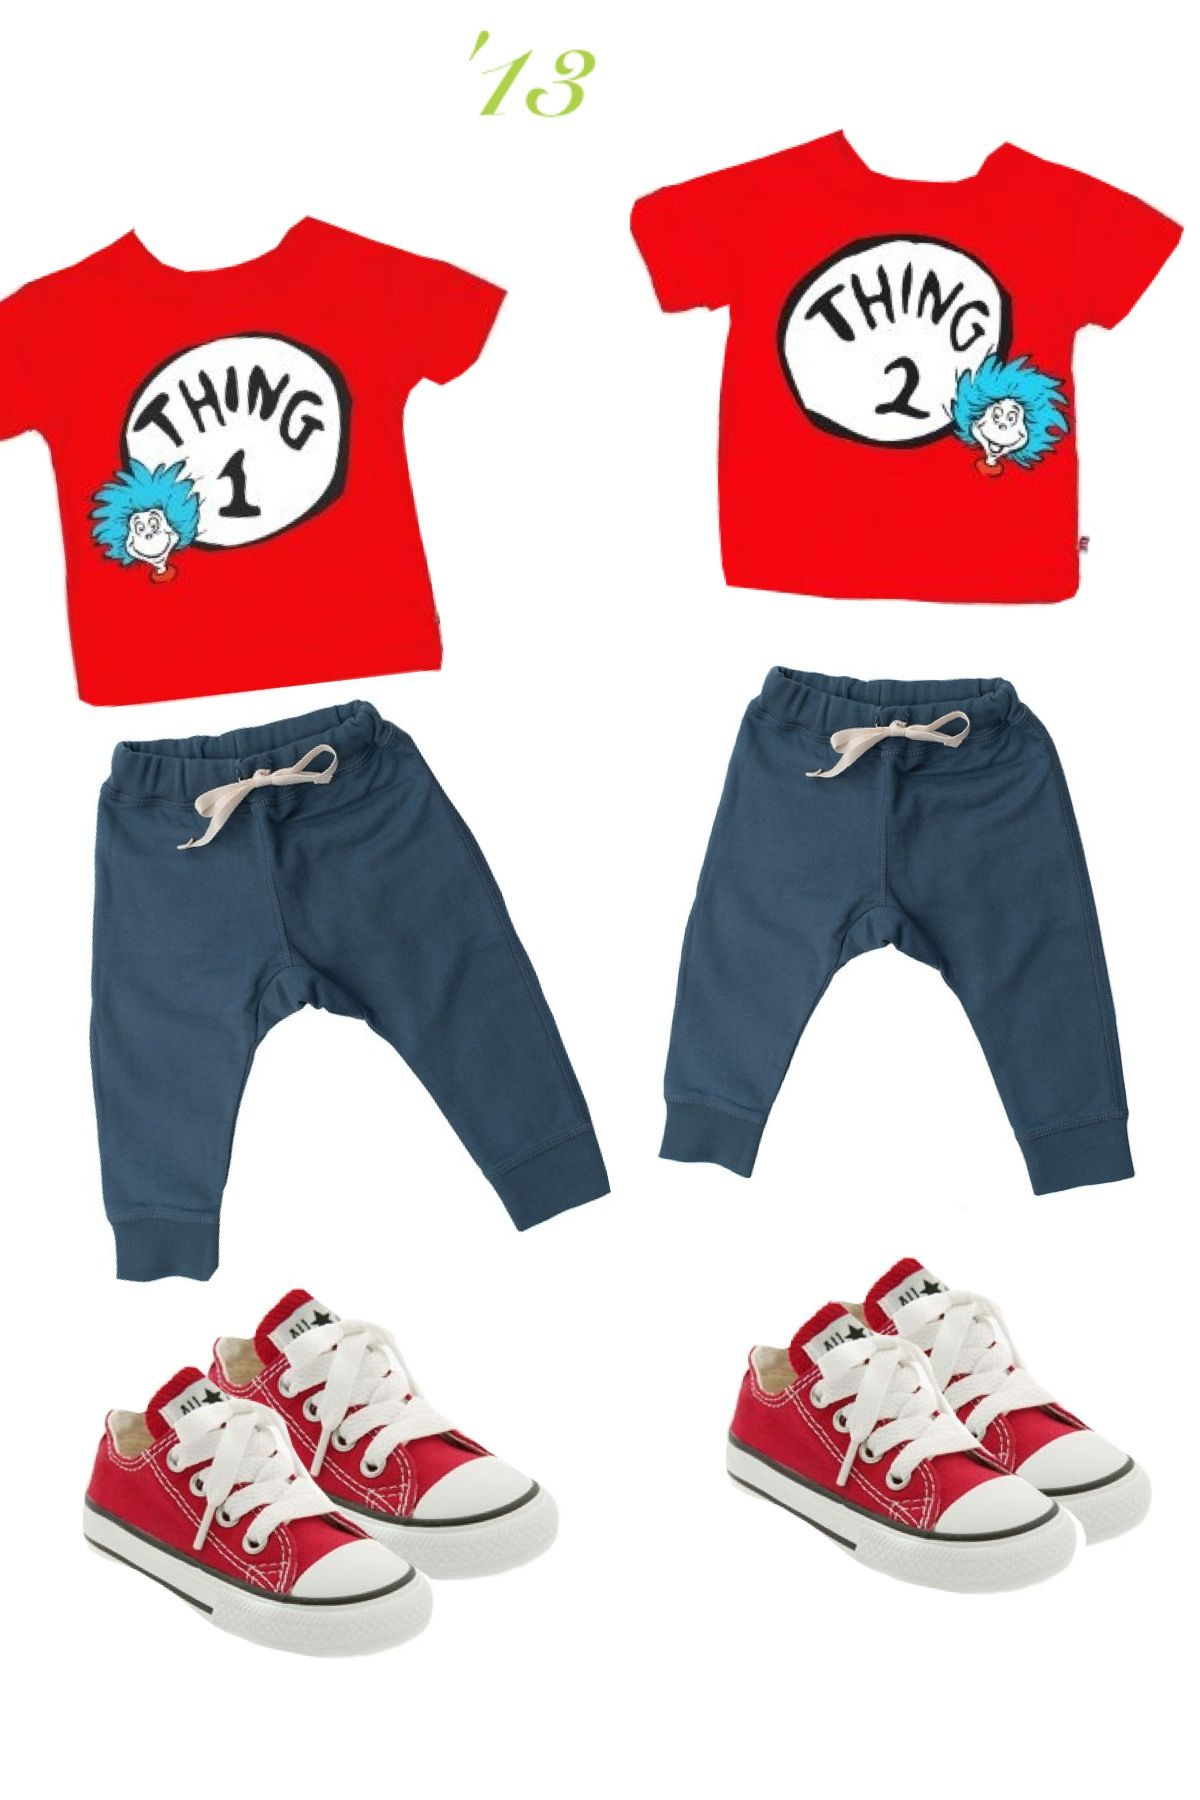 08bdf9fab983 Thing 1 and thing 2 outfit combos for toddler twins!!!  unisex  cute ...